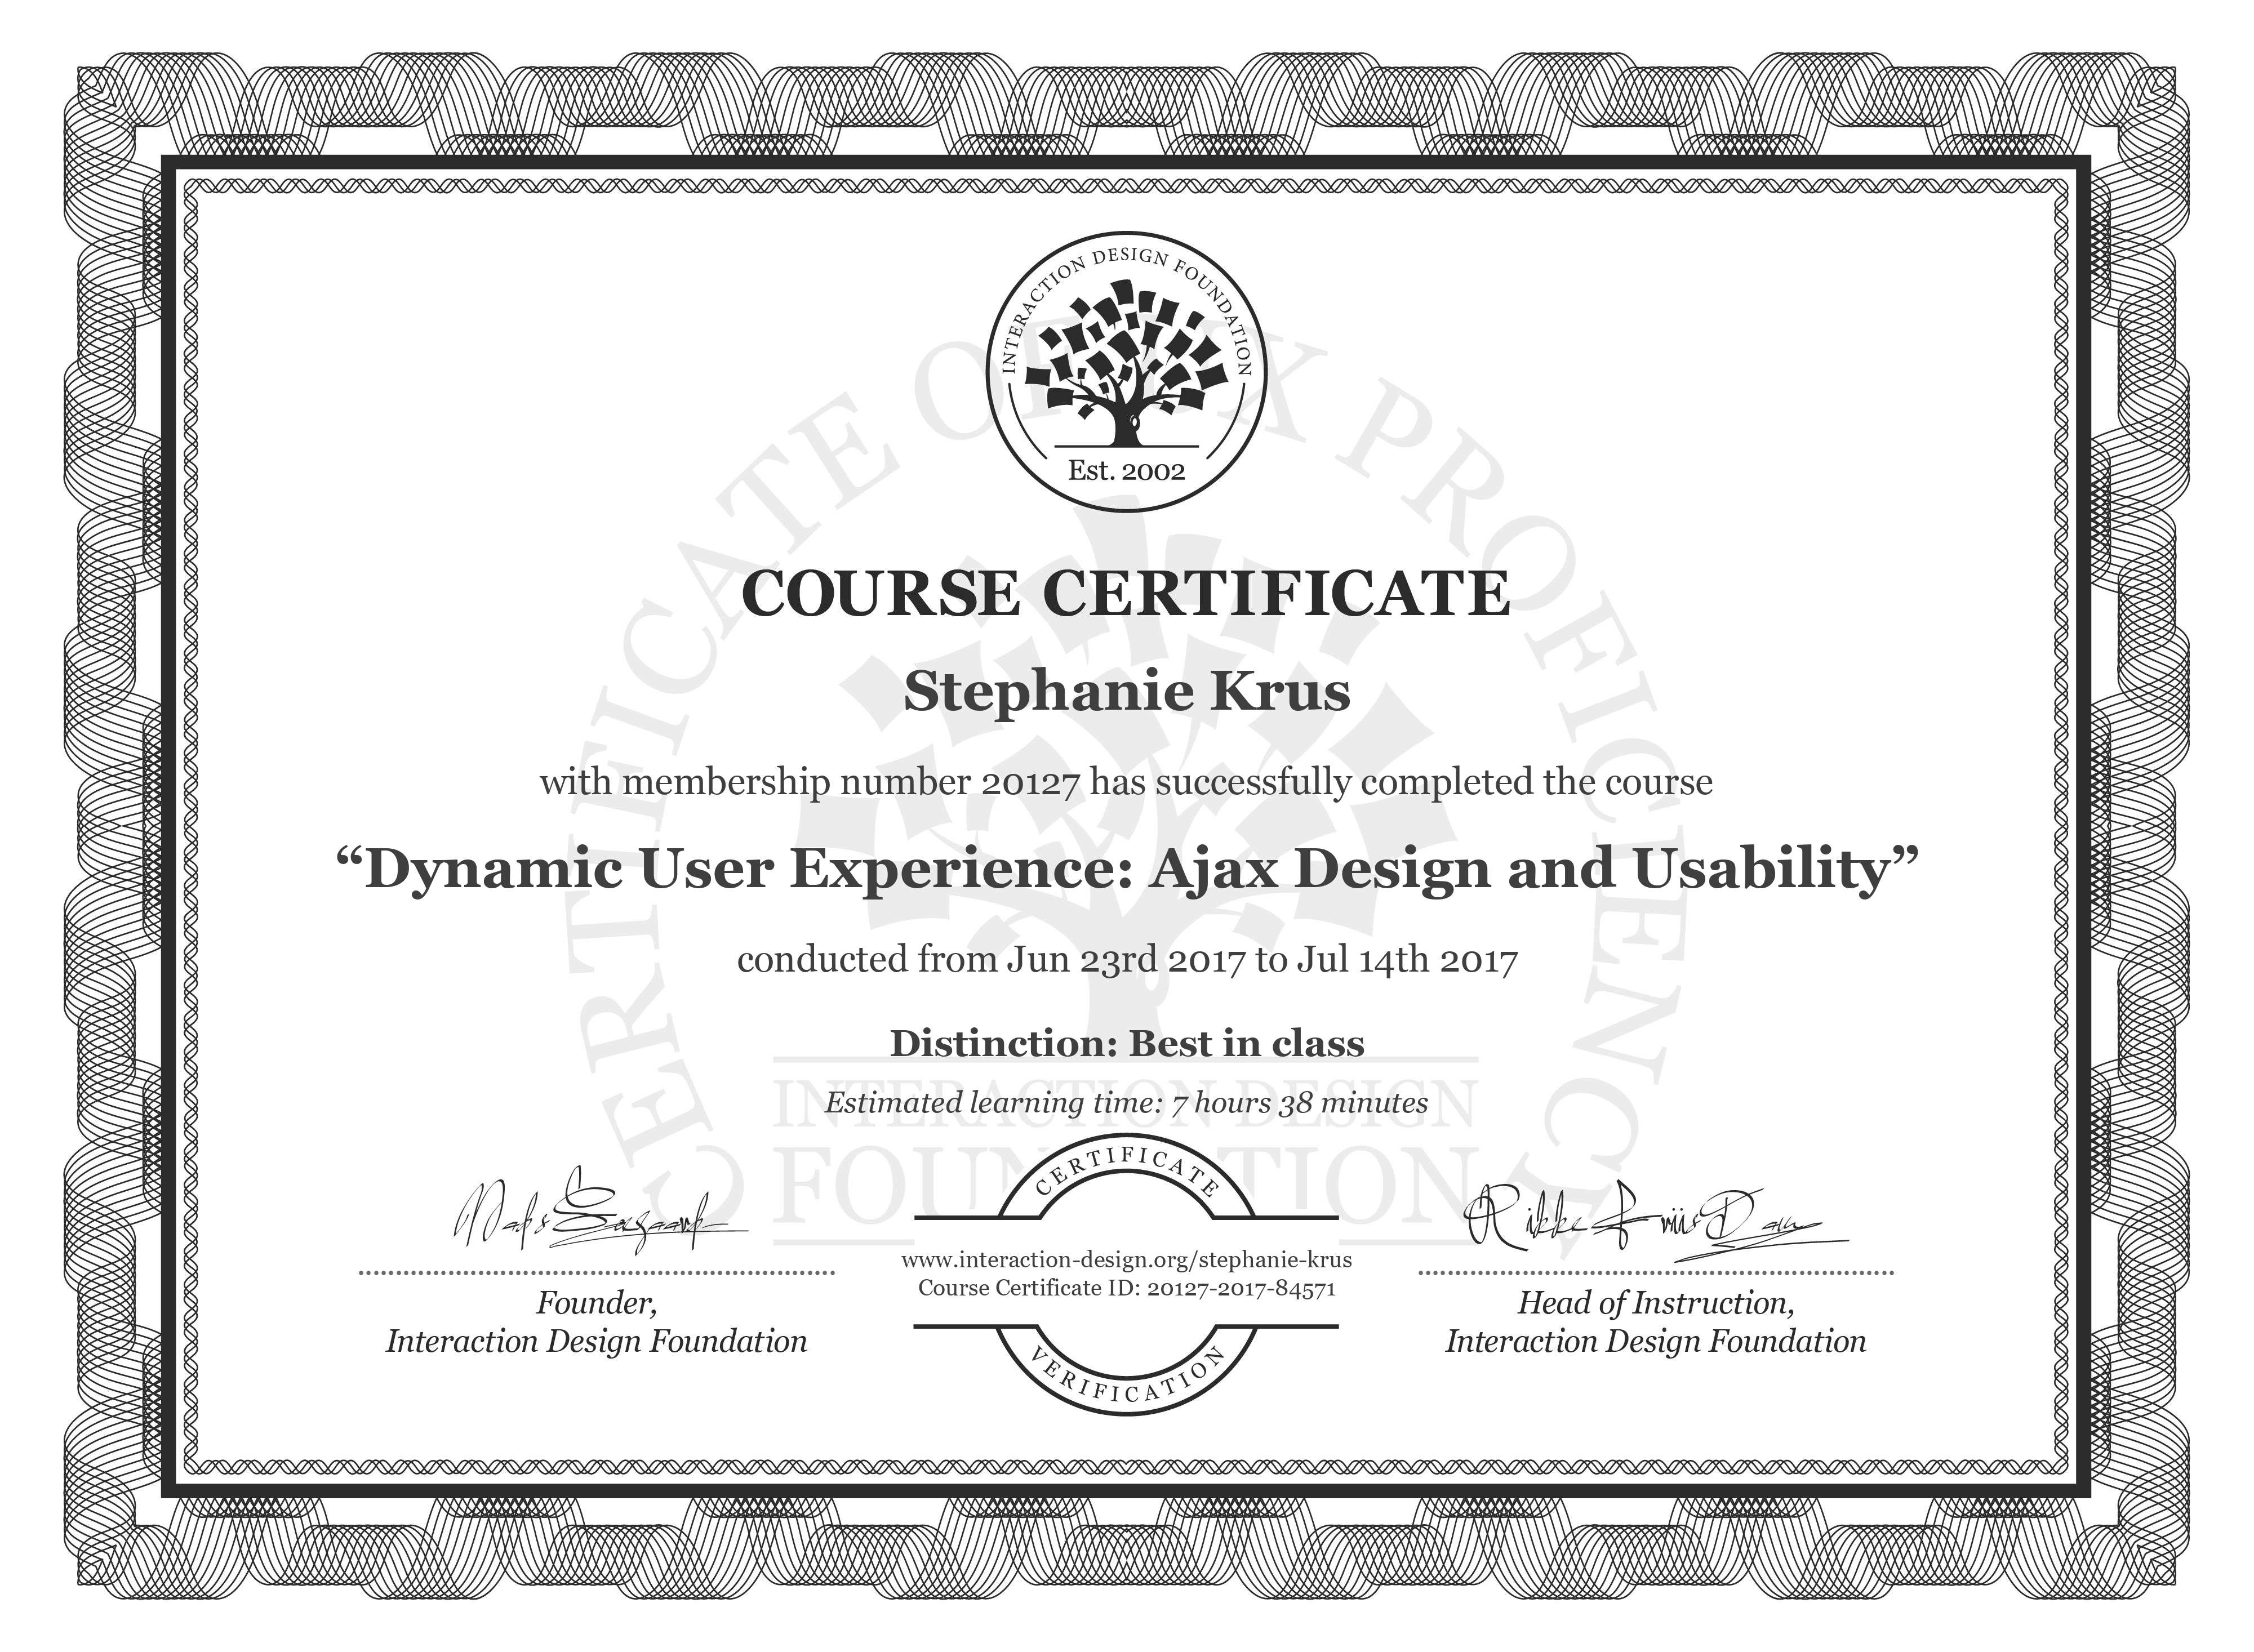 Stephanie Krus's Course Certificate: Dynamic User Experience: Ajax Design and Usability